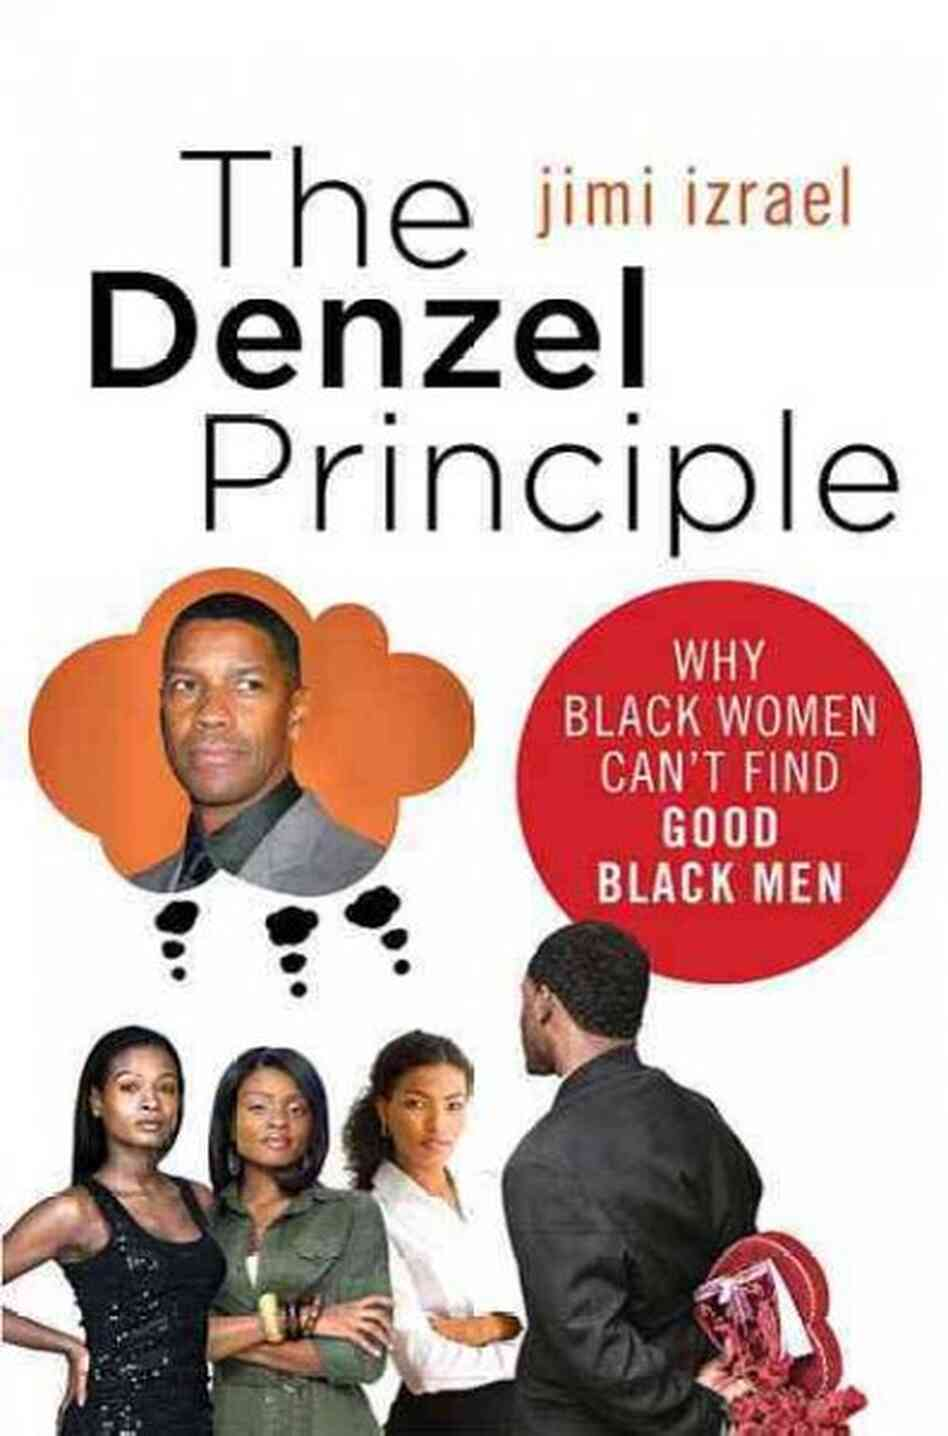 The Denzel Principle